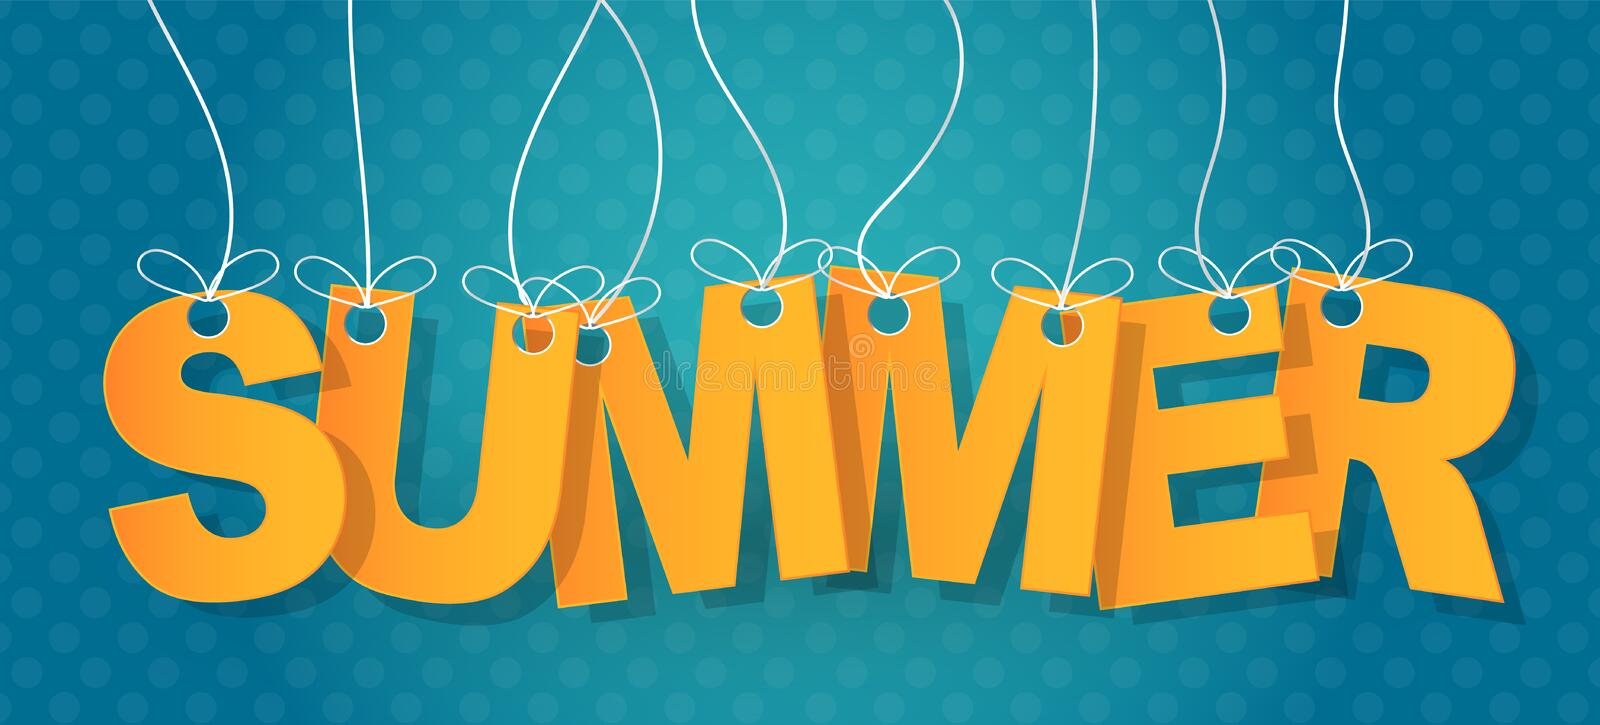 Summer text typography. Letters haning on a string on a blue background. Vector illustration.  stock illustration